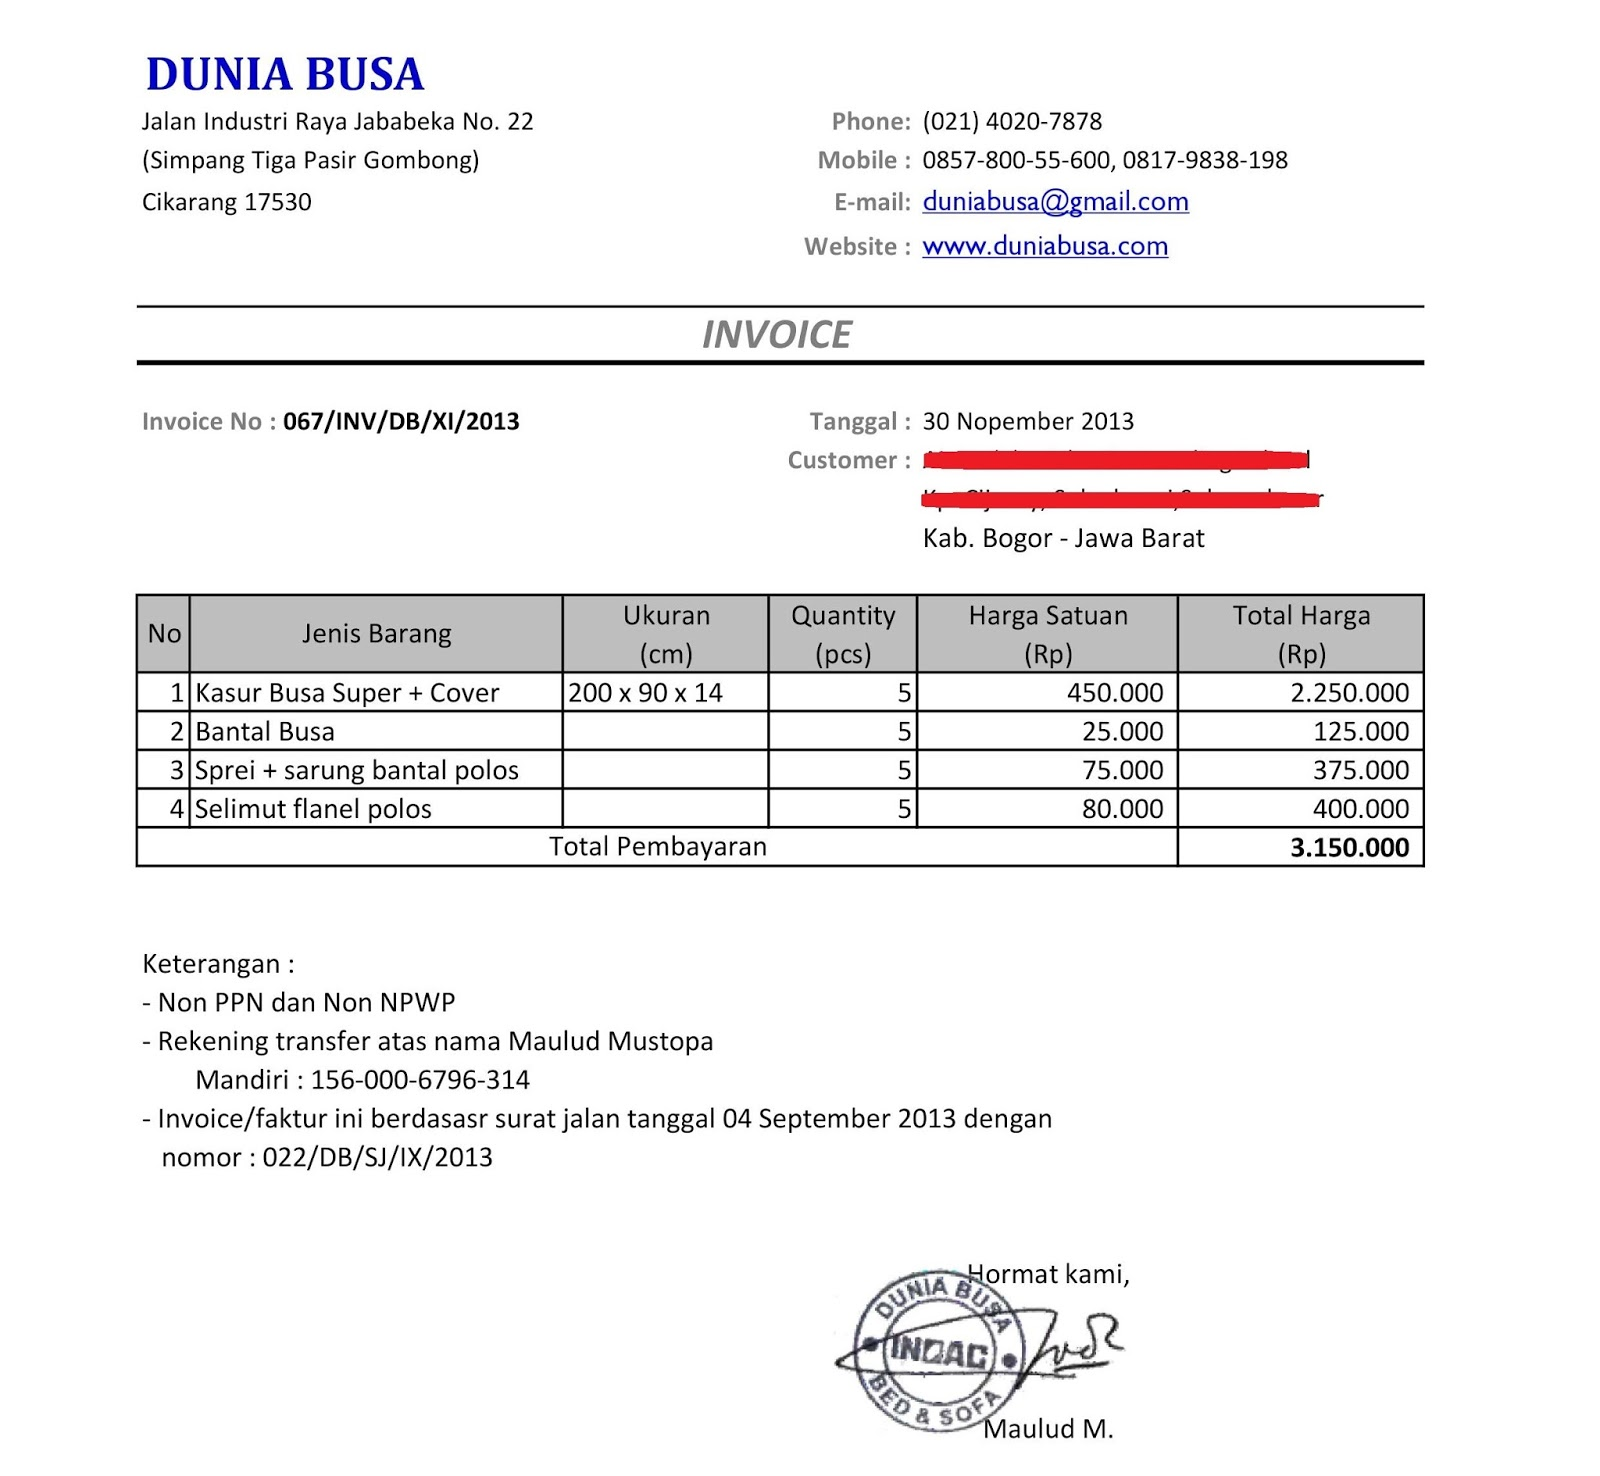 Usdgus  Winsome Free Invoice Online  Create Invoice Online  Invoice Template  With Magnificent Contoh Format Invoice Atau Surat Tagihan  Brankas Arsip  Free Invoice Online With Comely Invoice Template Pdf Free Download Also Online Invoice Template Word In Addition Duplicate Invoice Books And Invoice Template Free Download Excel As Well As Go Invoice Additionally Simple Tax Invoice Template From Sklepco With Usdgus  Magnificent Free Invoice Online  Create Invoice Online  Invoice Template  With Comely Contoh Format Invoice Atau Surat Tagihan  Brankas Arsip  Free Invoice Online And Winsome Invoice Template Pdf Free Download Also Online Invoice Template Word In Addition Duplicate Invoice Books From Sklepco